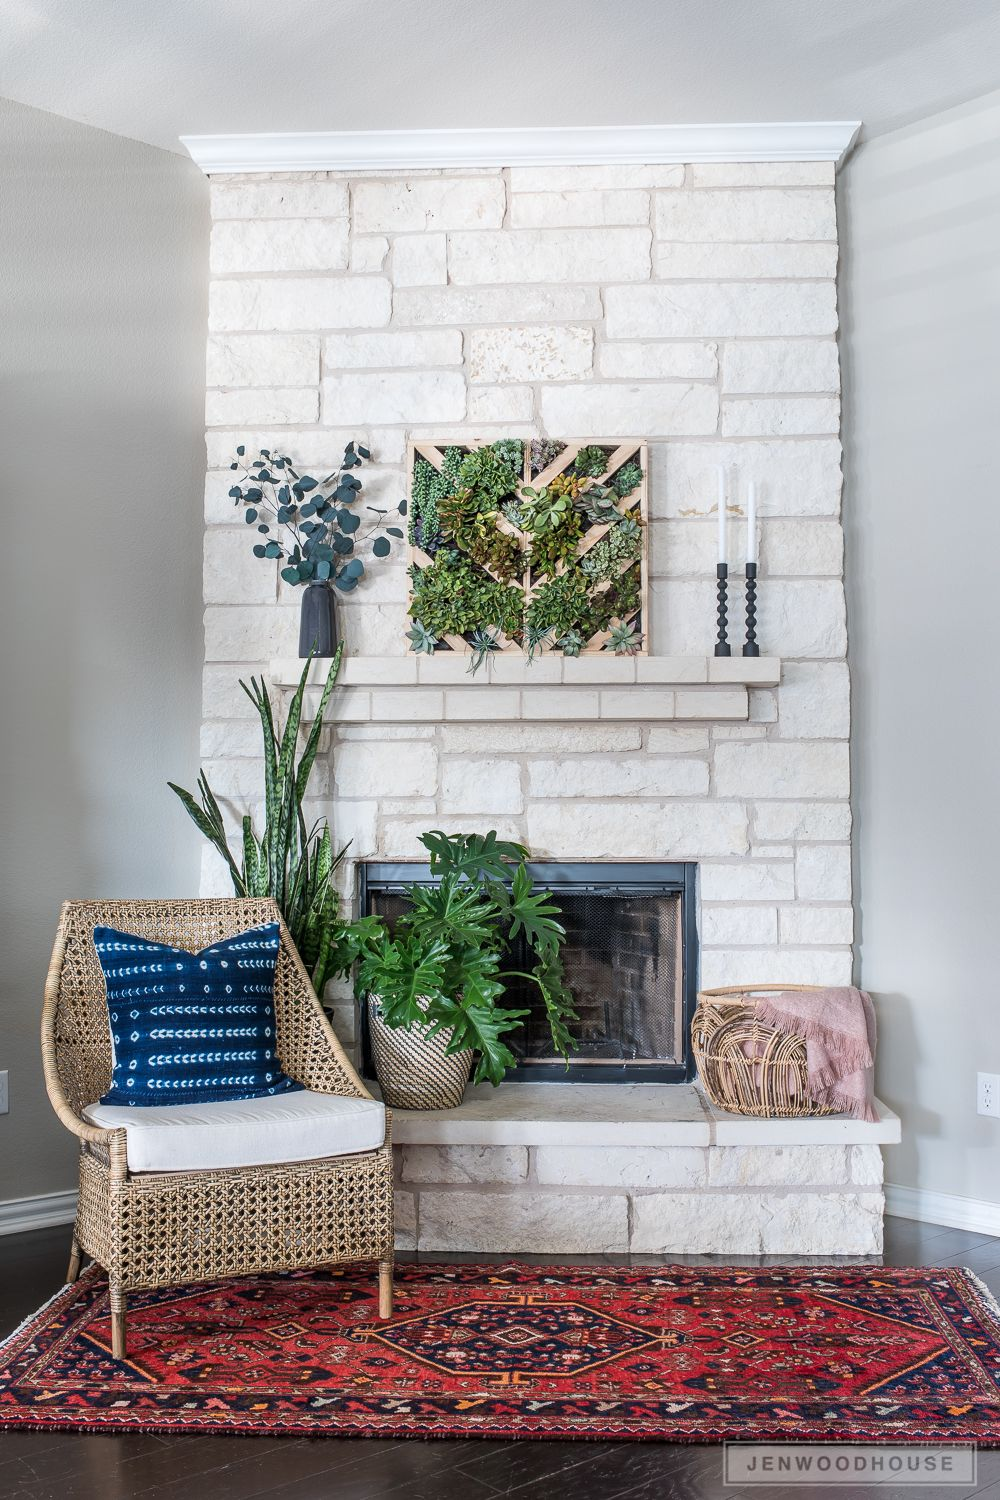 How To Make A Vertical Succulent Garden   Planters, DIY ideas and ...